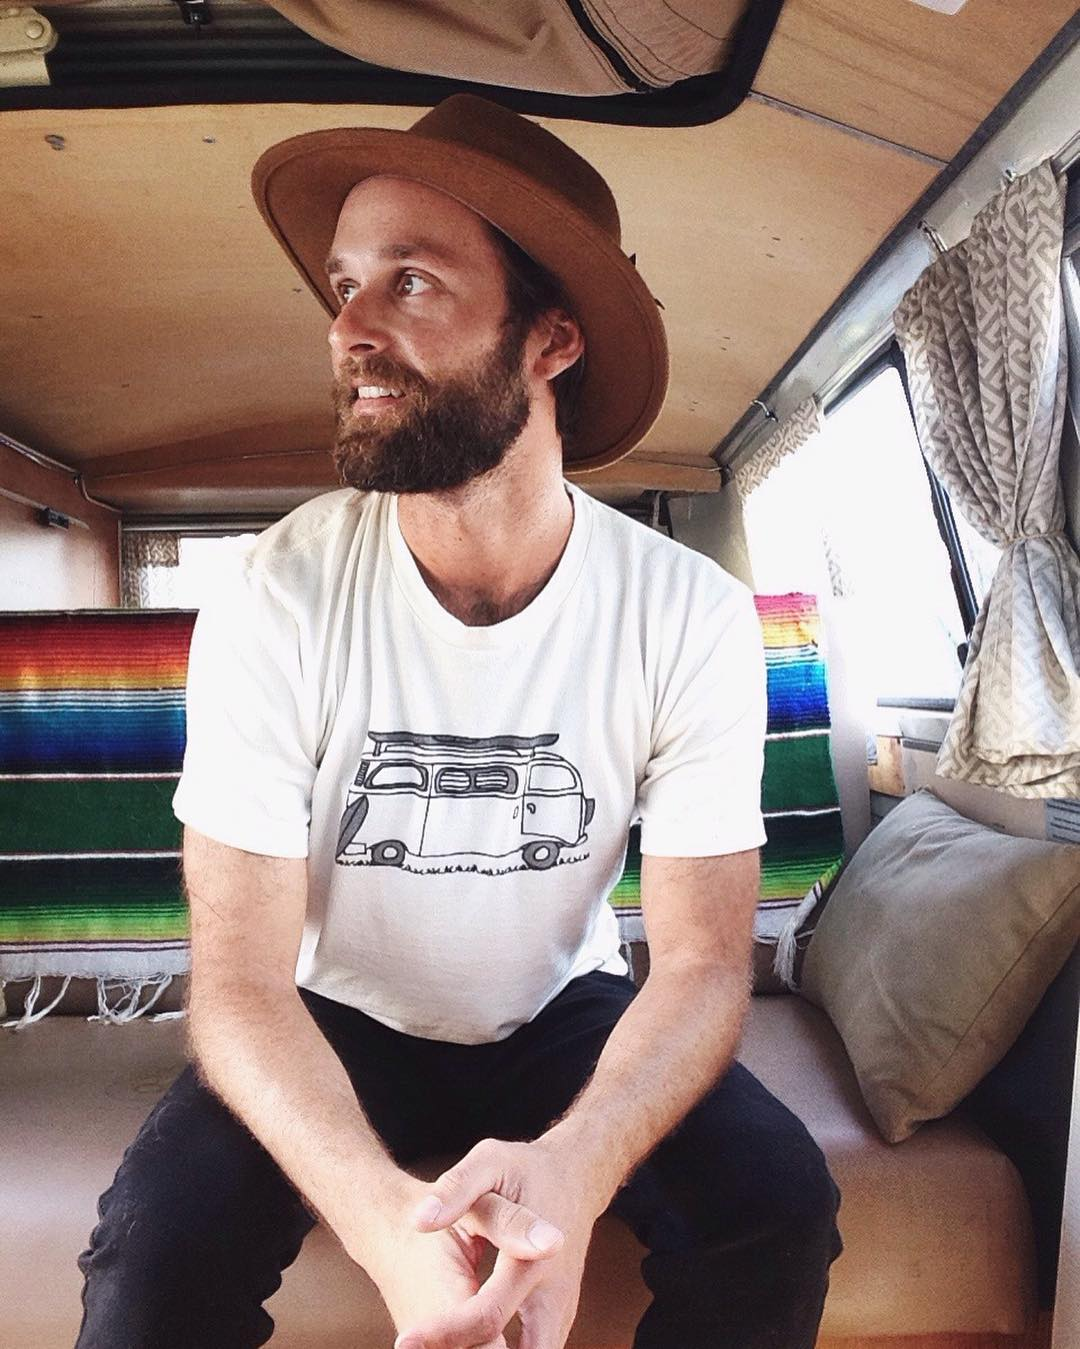 ~ Create Adventures ~  We're fully stoked on Mens and Women's Adventure tees! Follow the link in our bio to grab one for all your conscious adventures.  Made in the USA from hemp and organic cotton. Featuring a hand drawn sketch of our '69 Westy named...